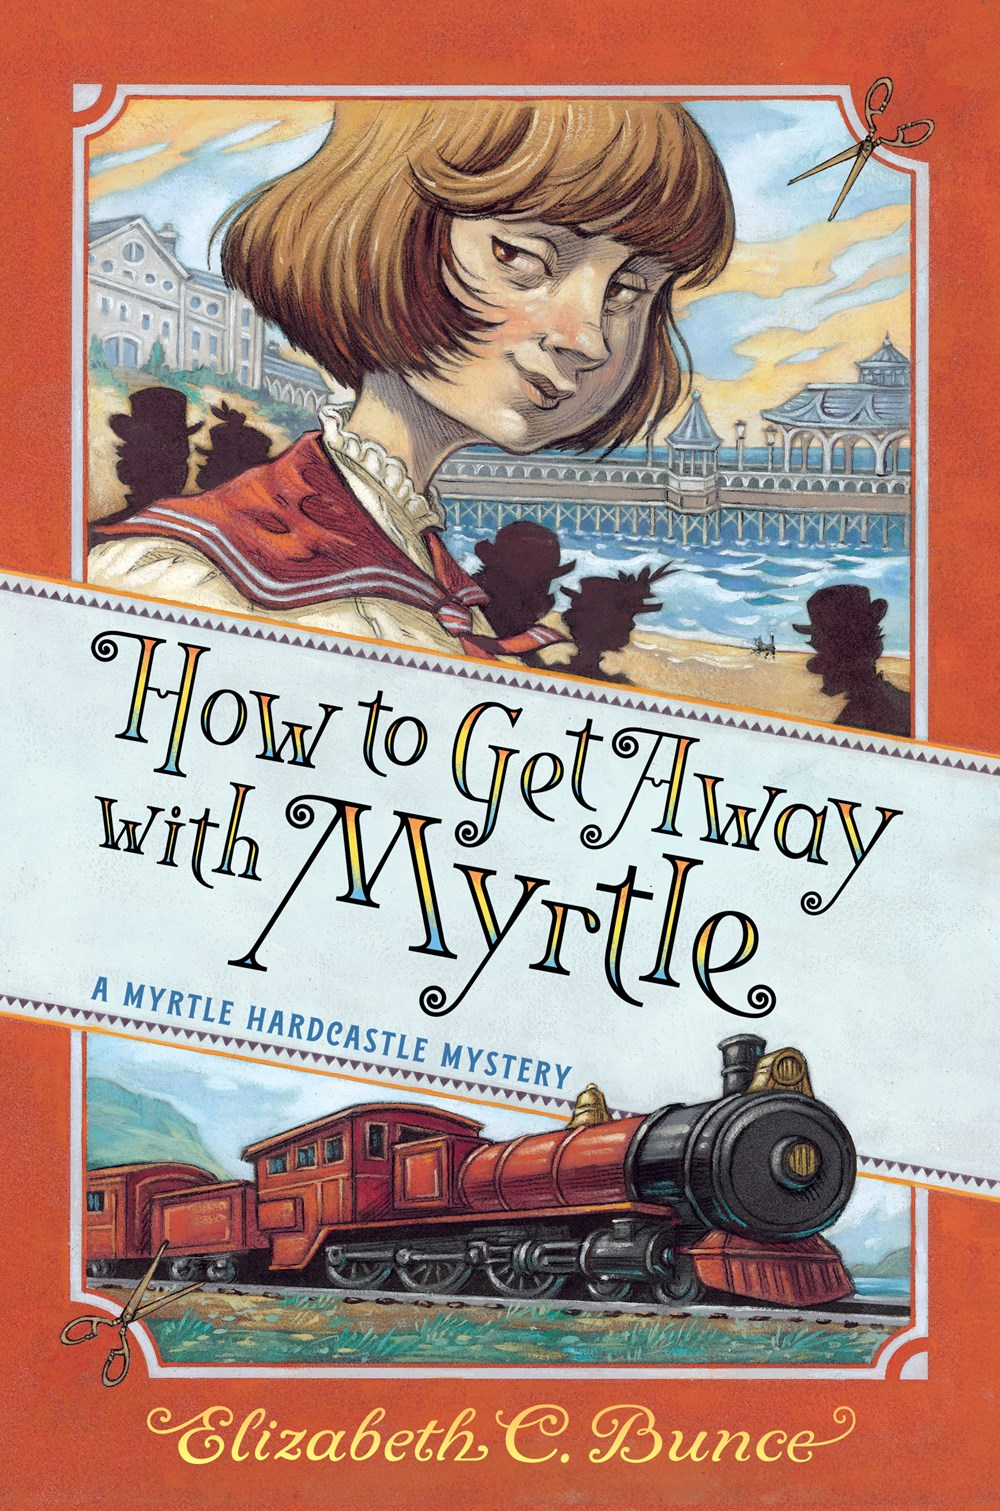 How to Get Away with Myrtle by Elizabeth C. Bunce